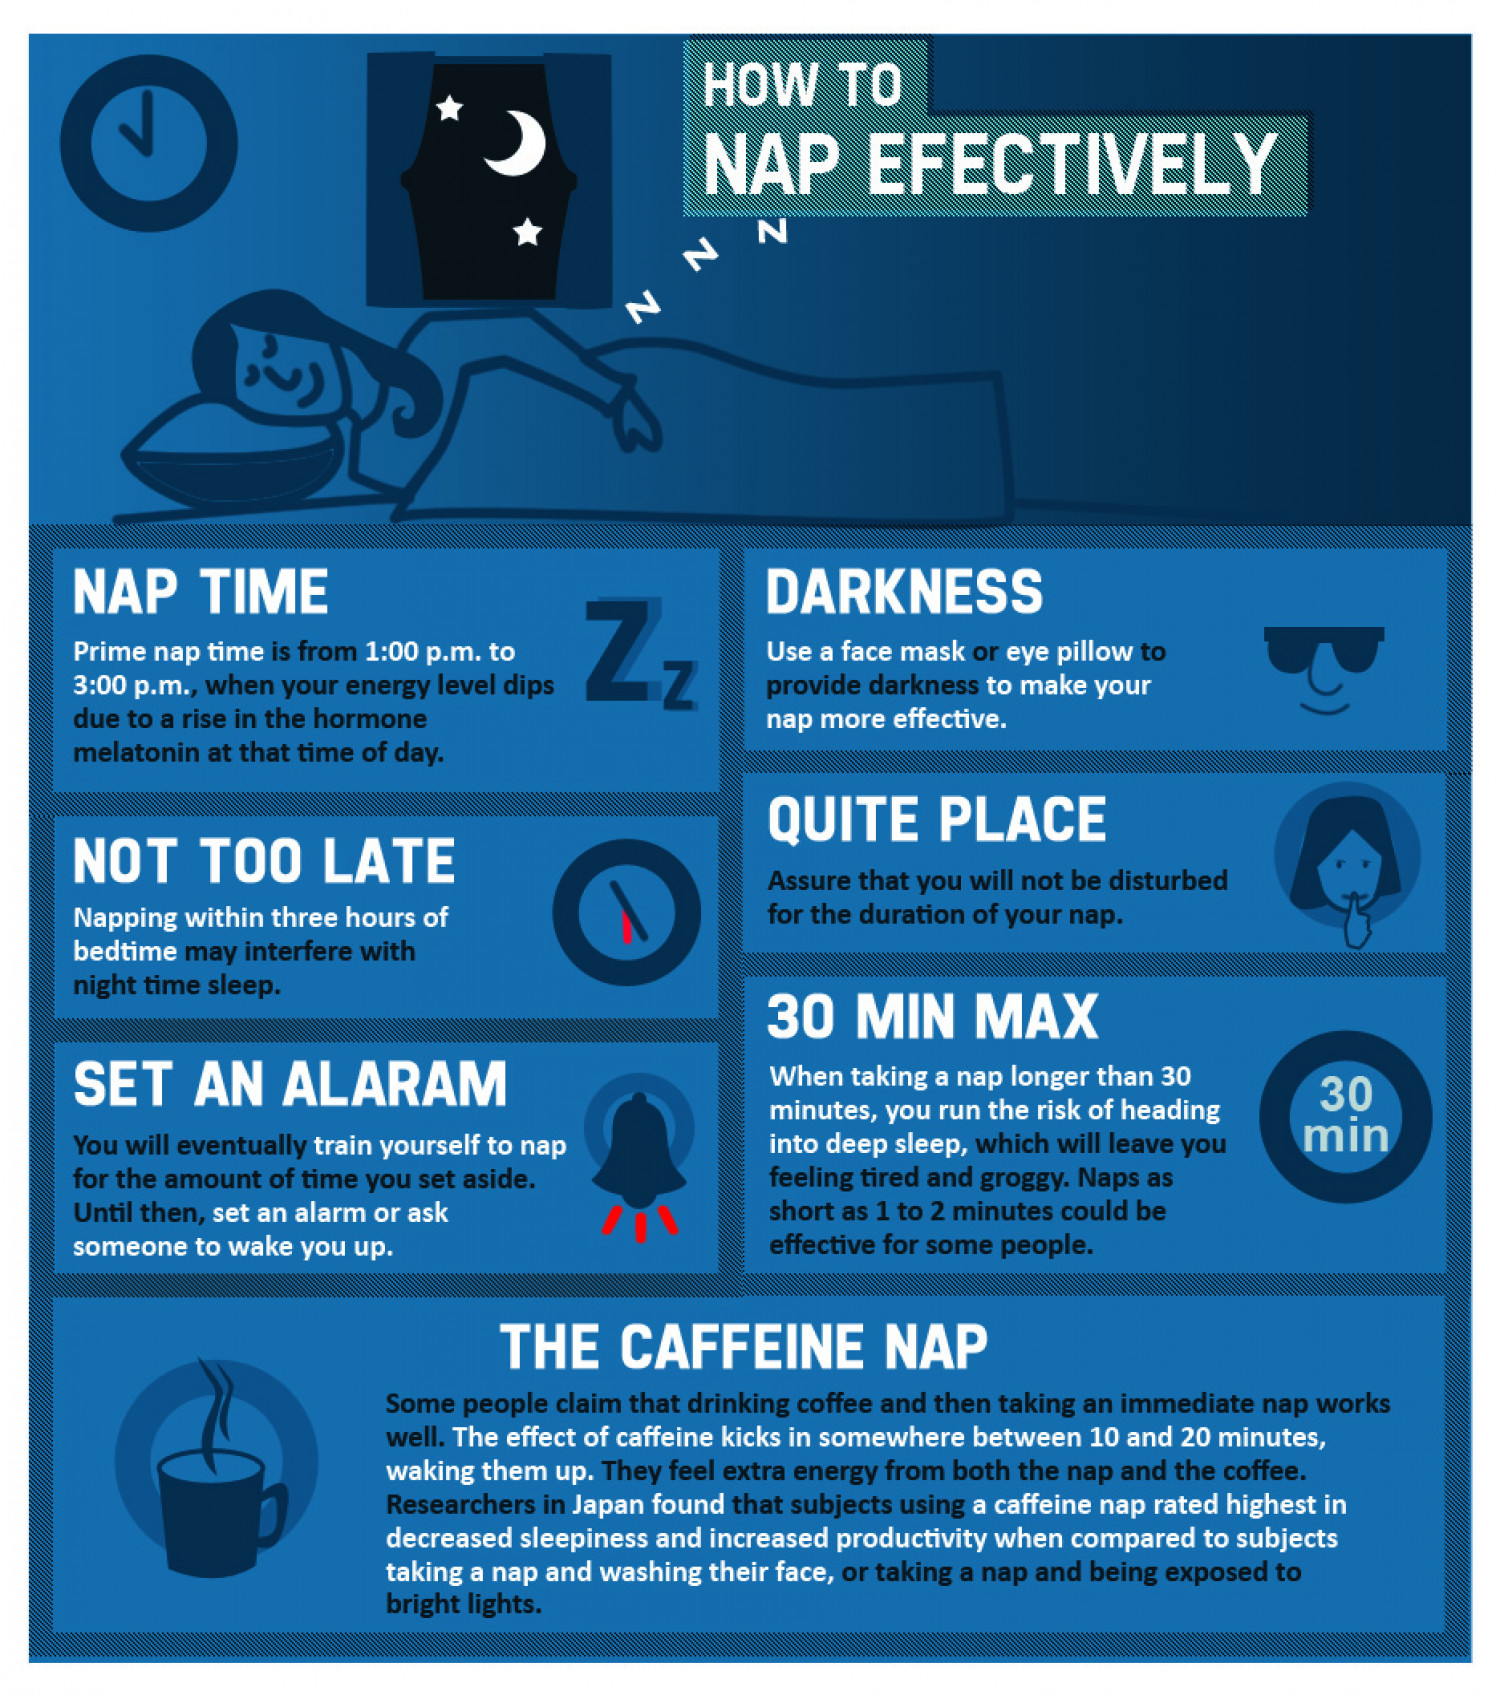 How to Nap Effectively Infographic